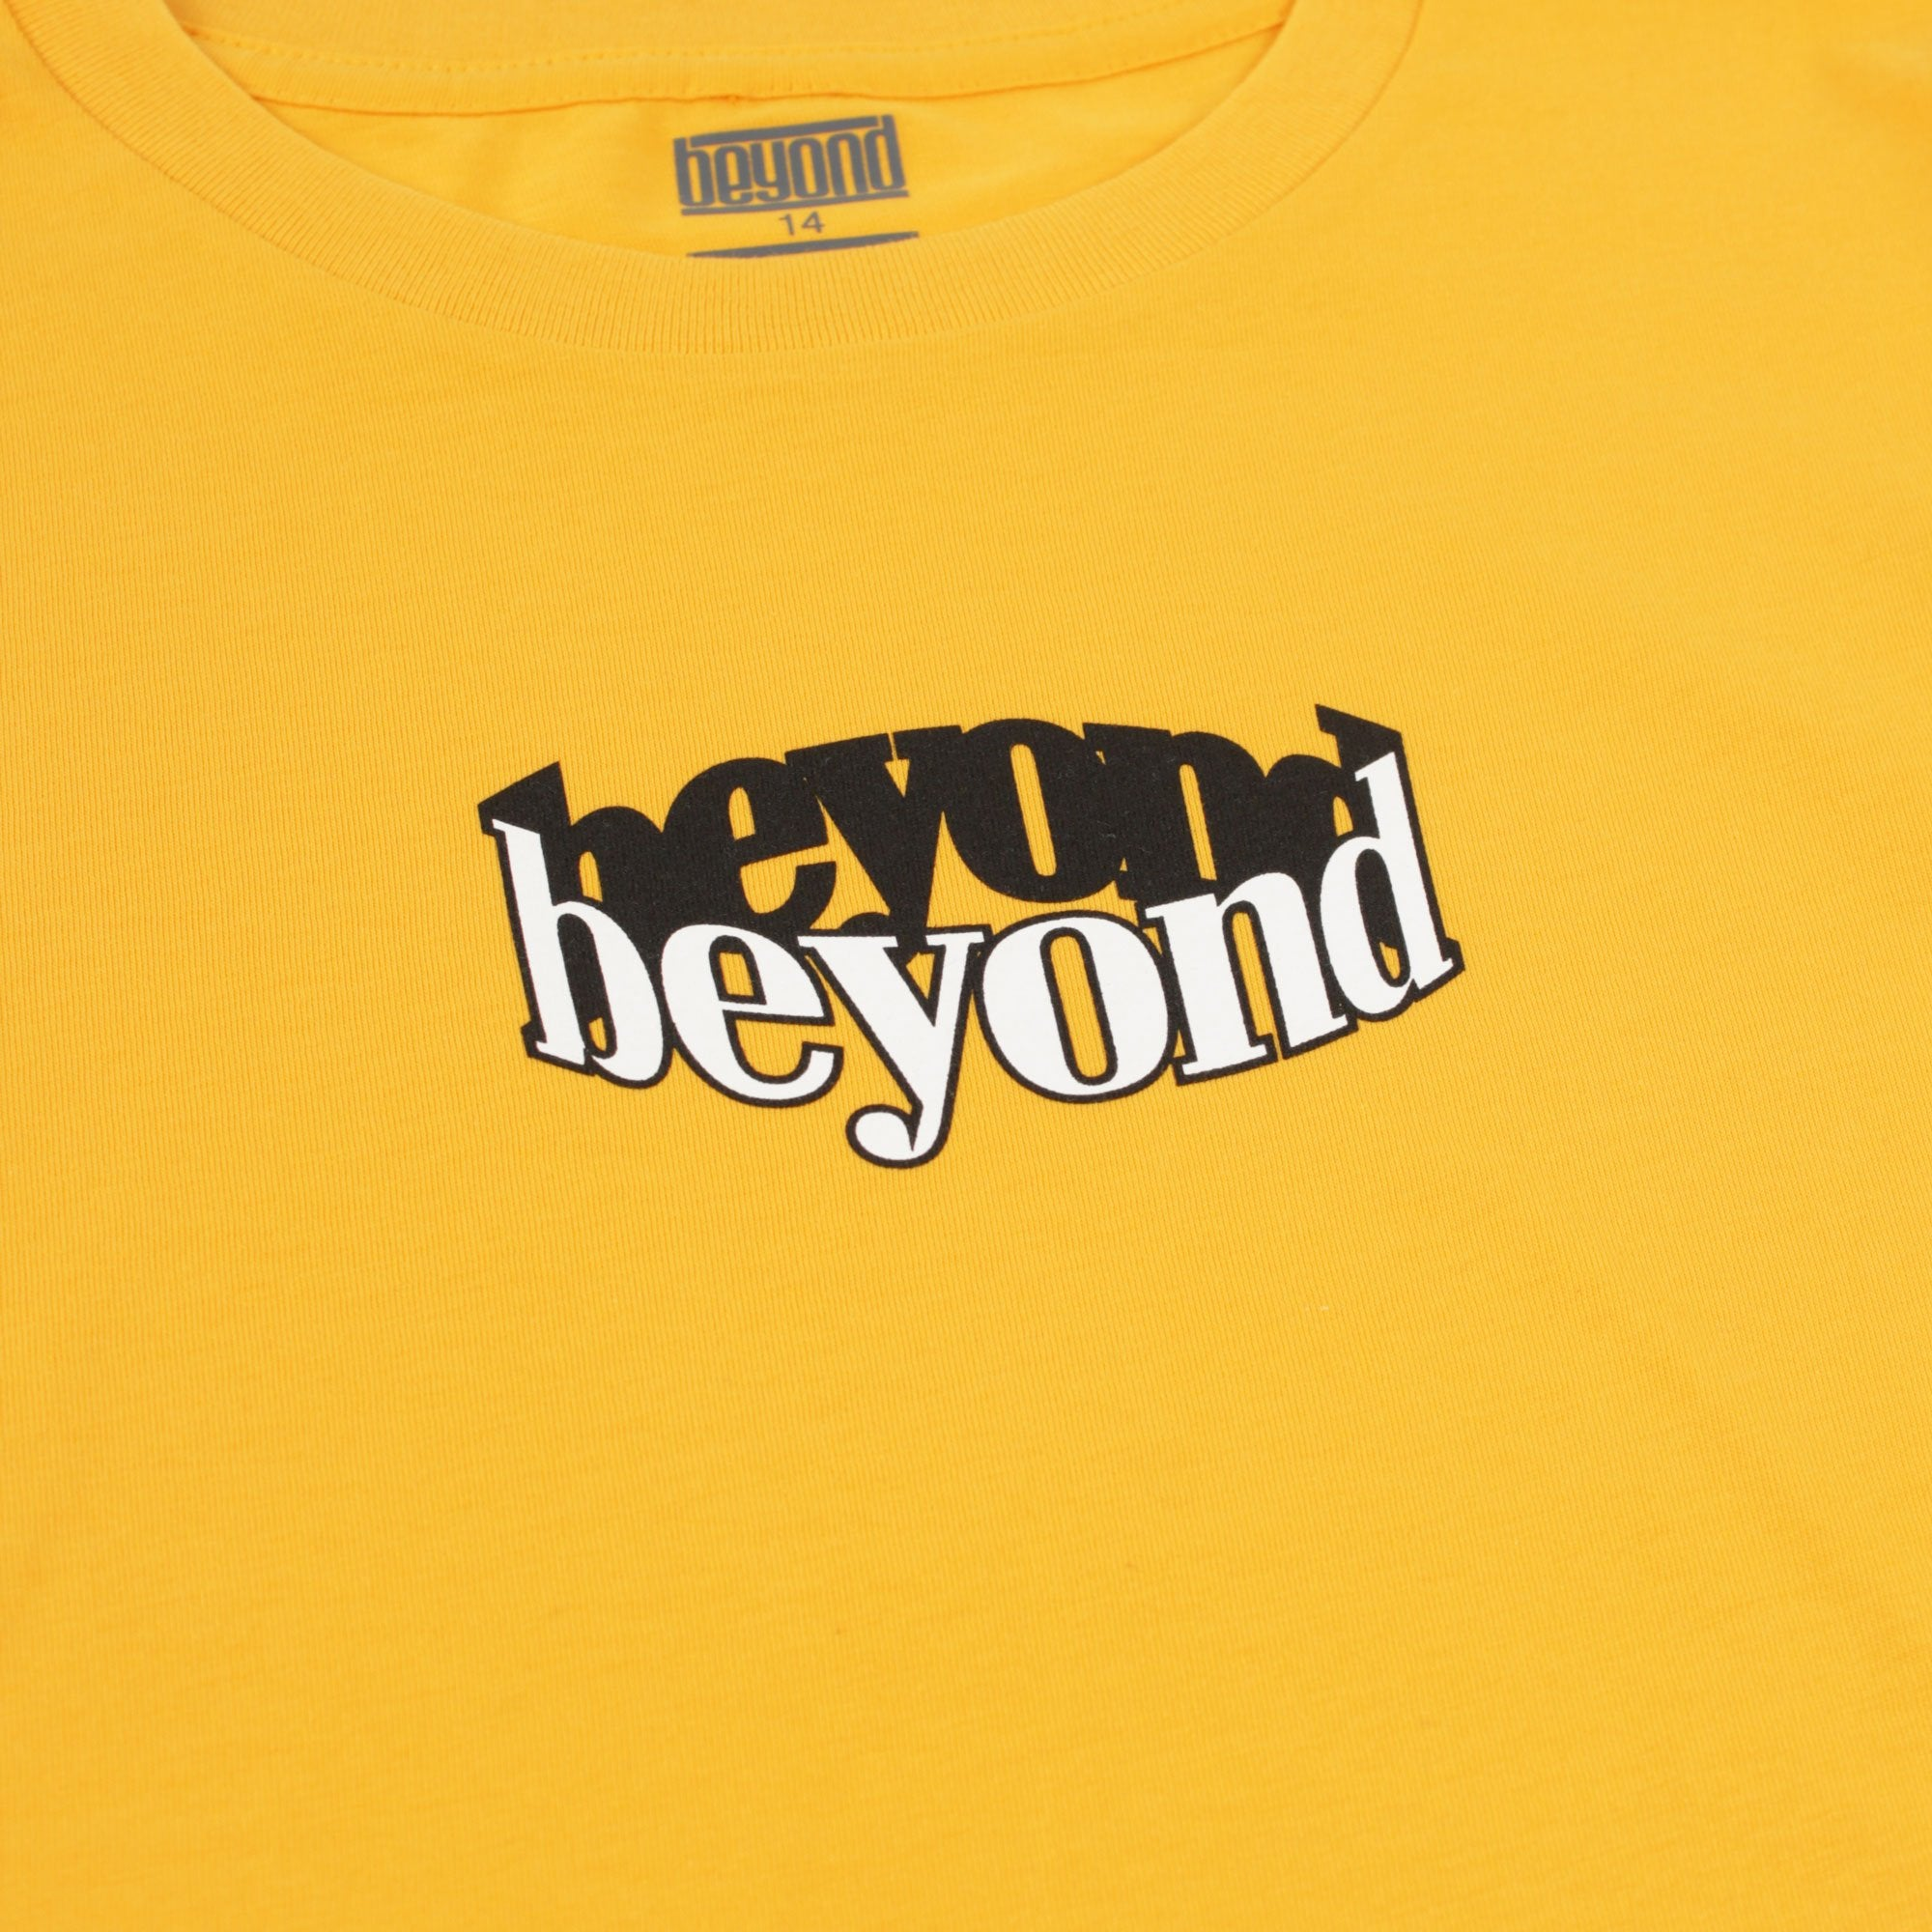 Beyond Full Flavor Tee (Youth) Product Photo #2